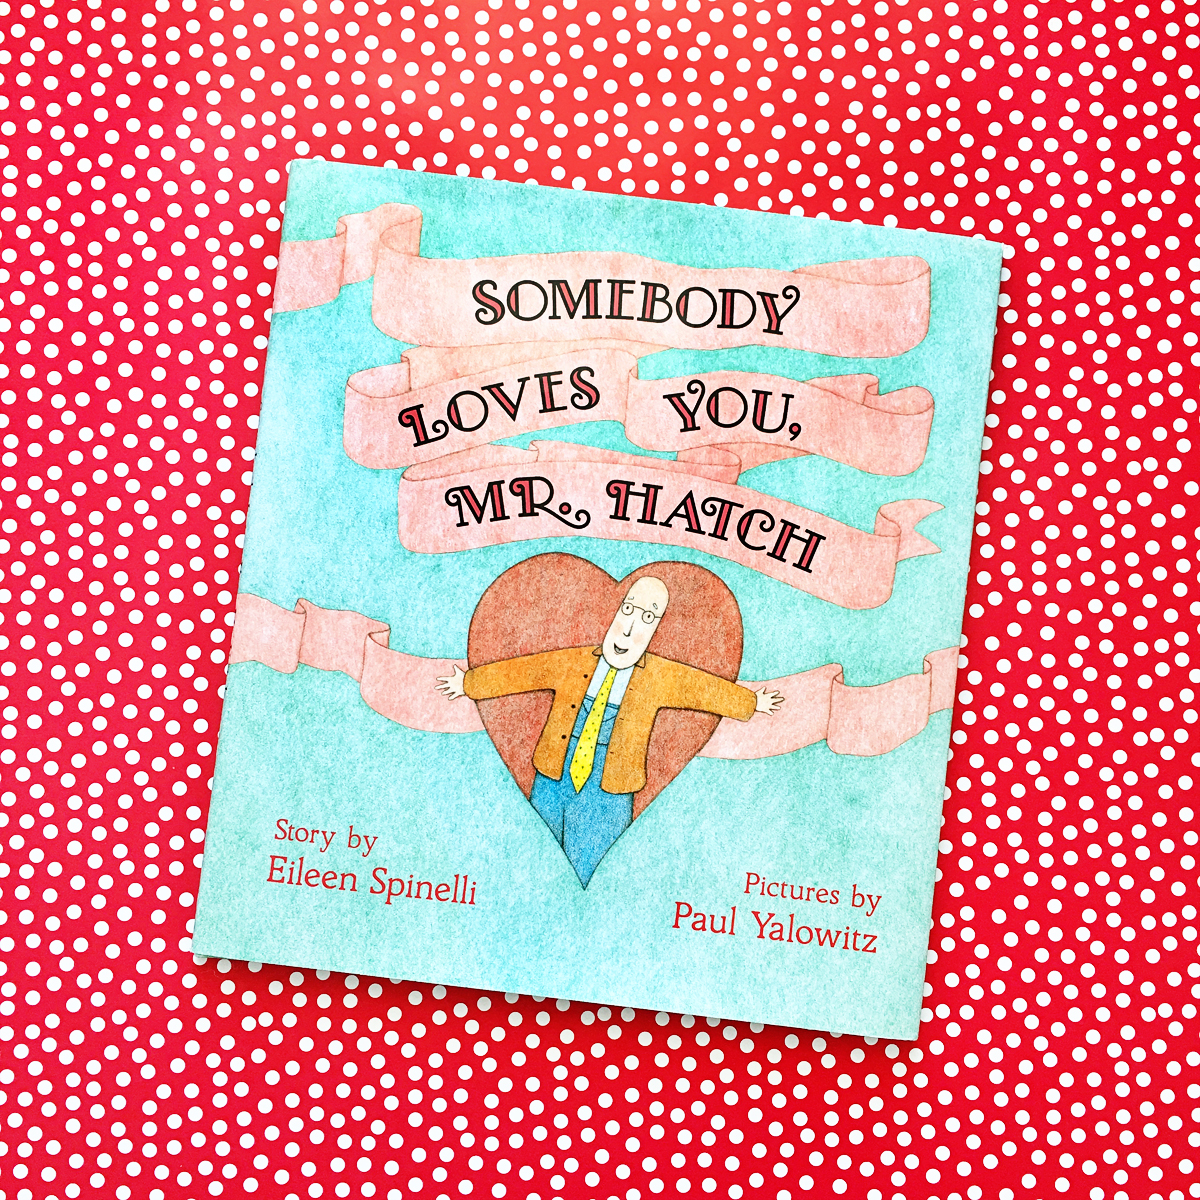 Somebody Loves You, Mr. Hatch | Little Lit Book Series